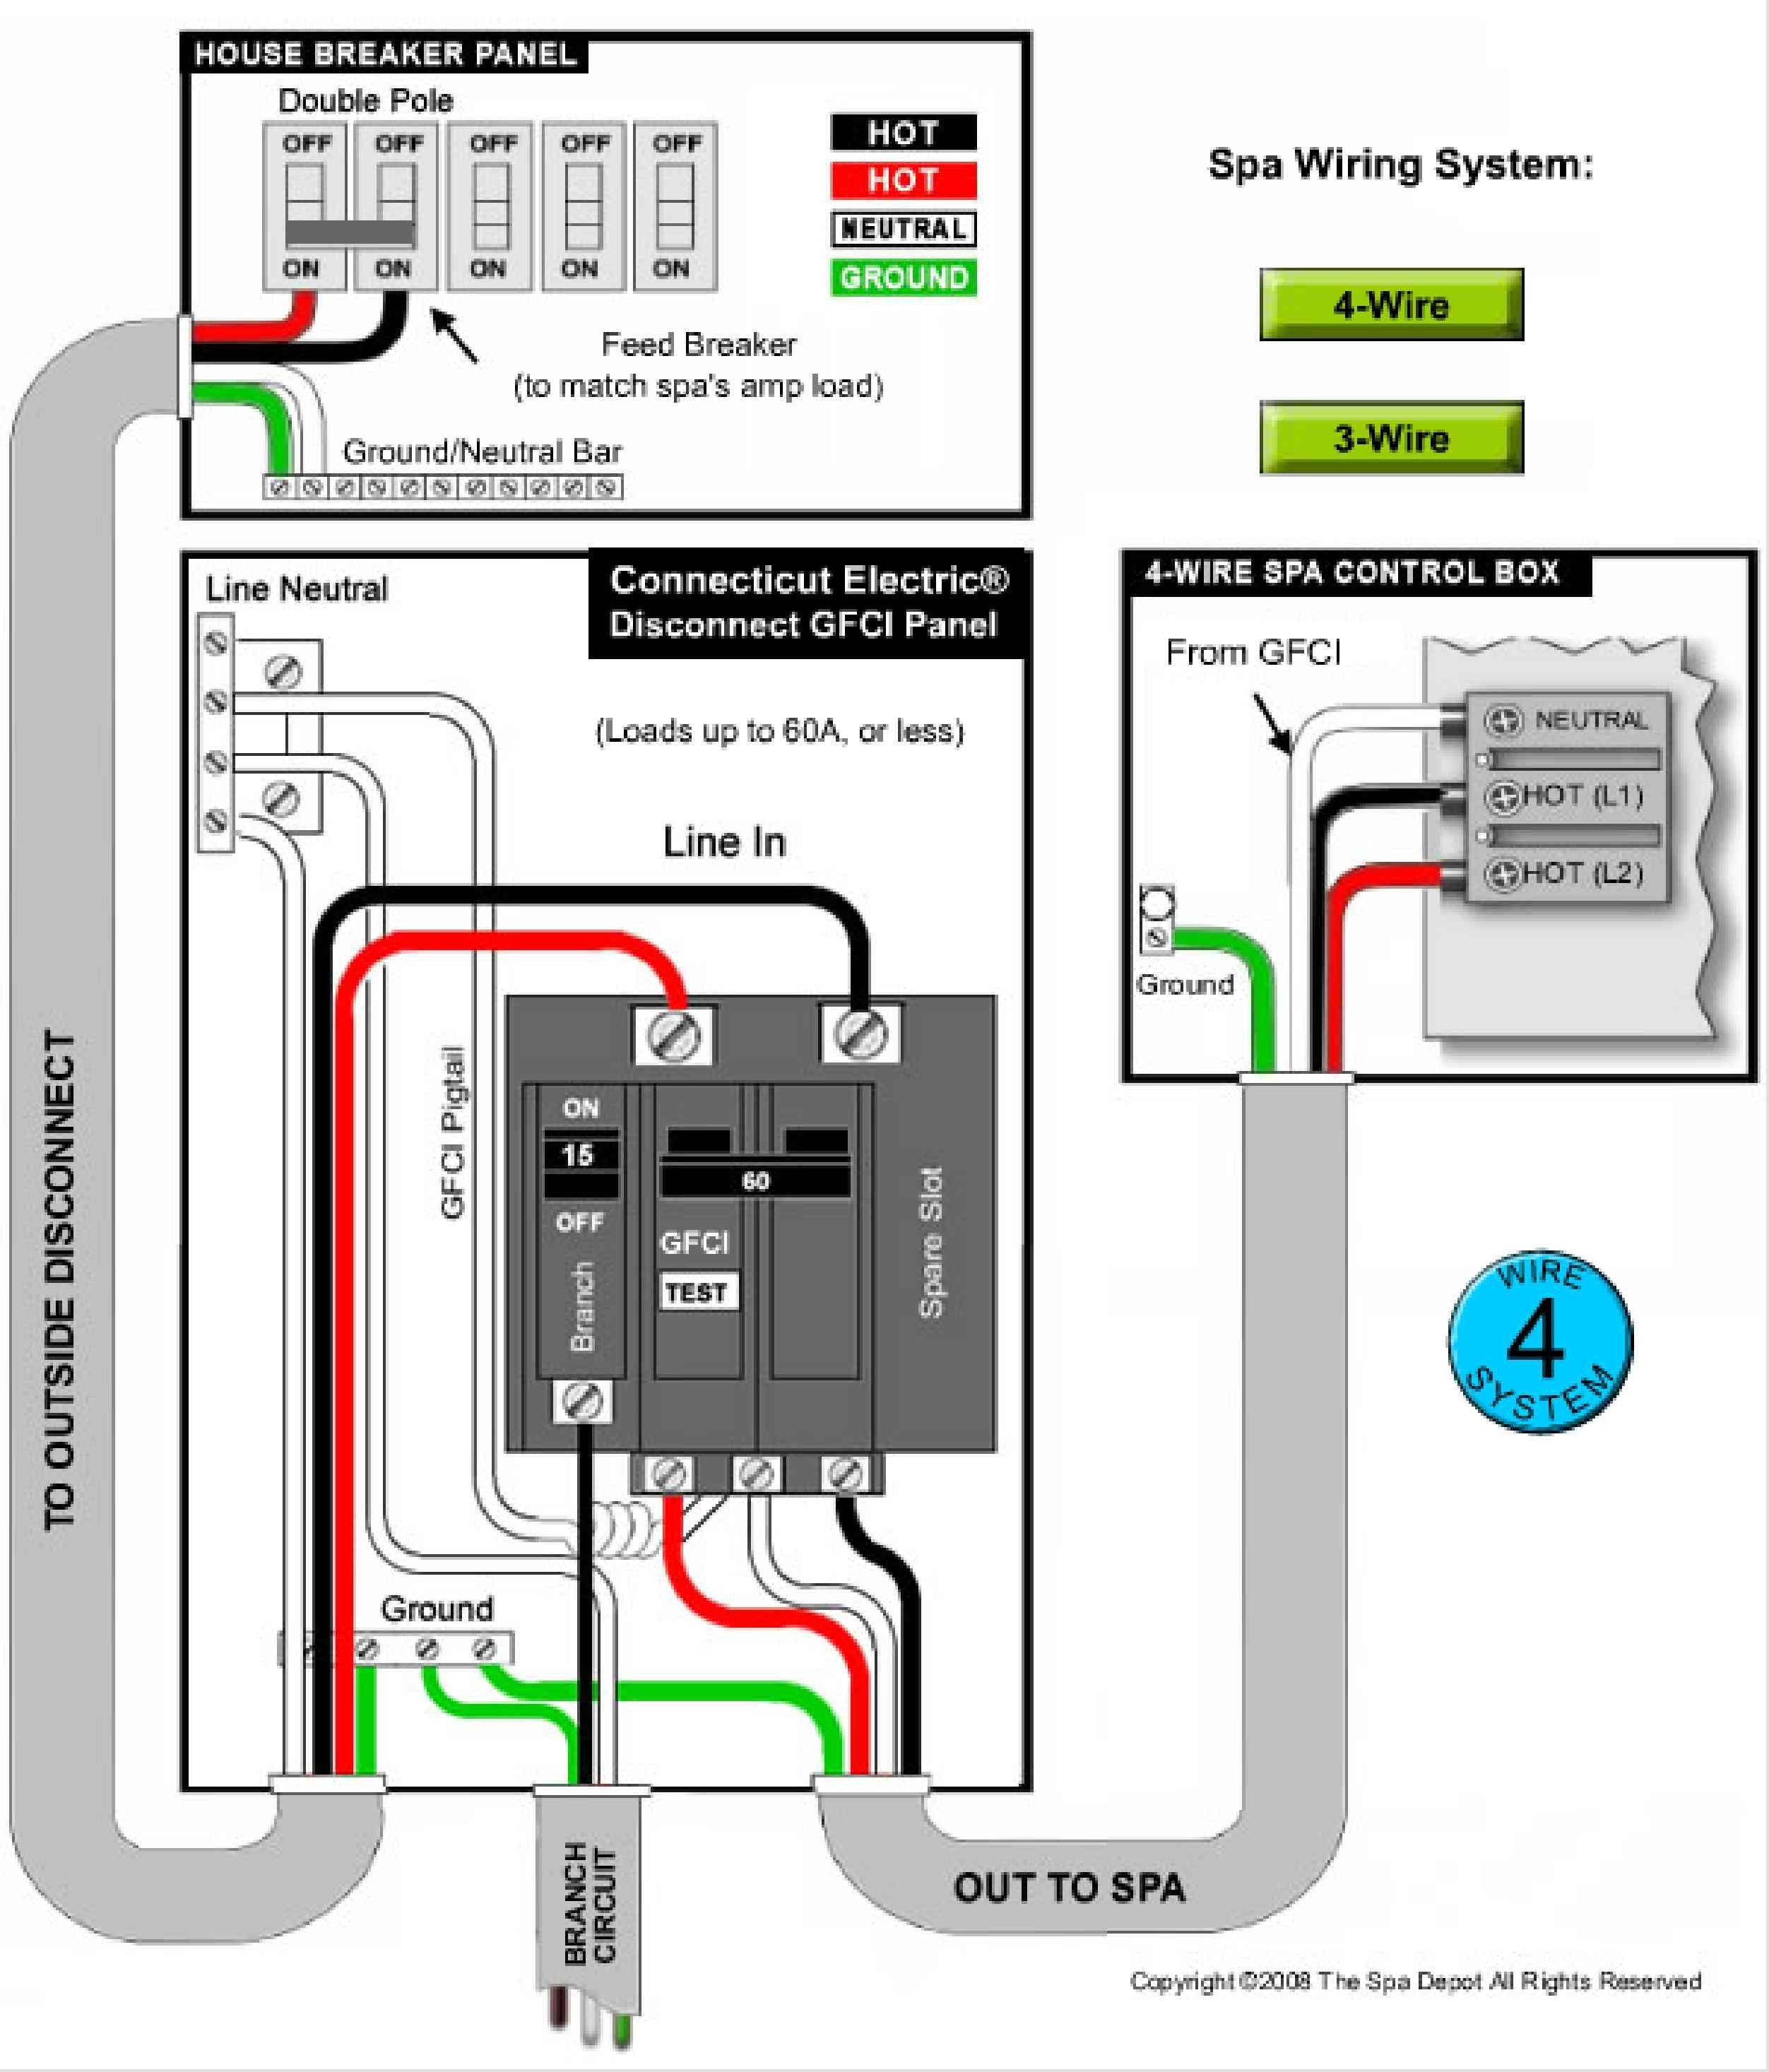 Square D Hot Tub Gfci Breaker Wiring Diagram Luxury Hot Tub Wiring - Hot Tub Wiring Diagram